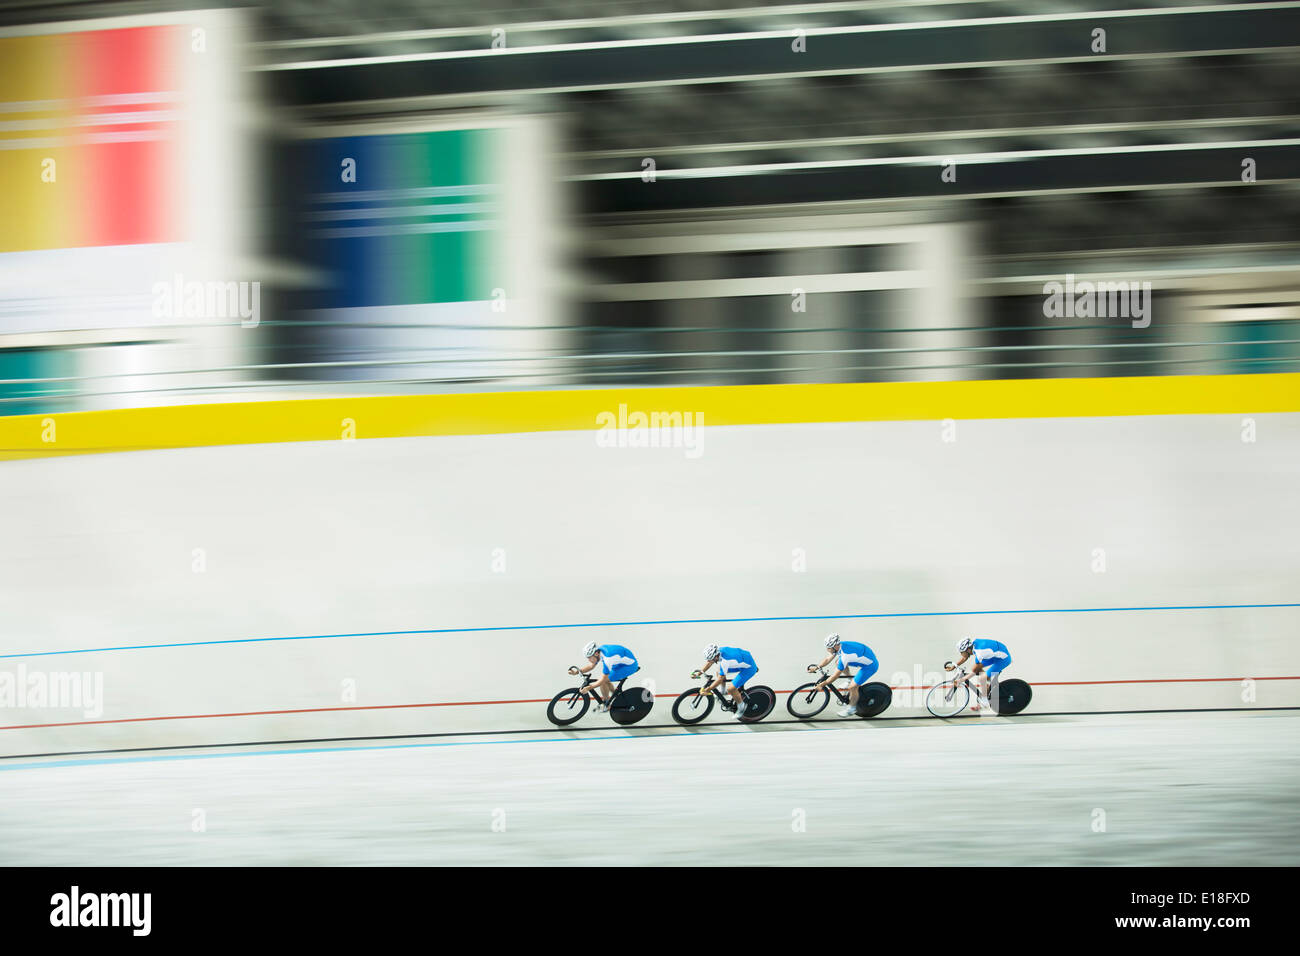 Track cycling team racing in velodrome - Stock Image